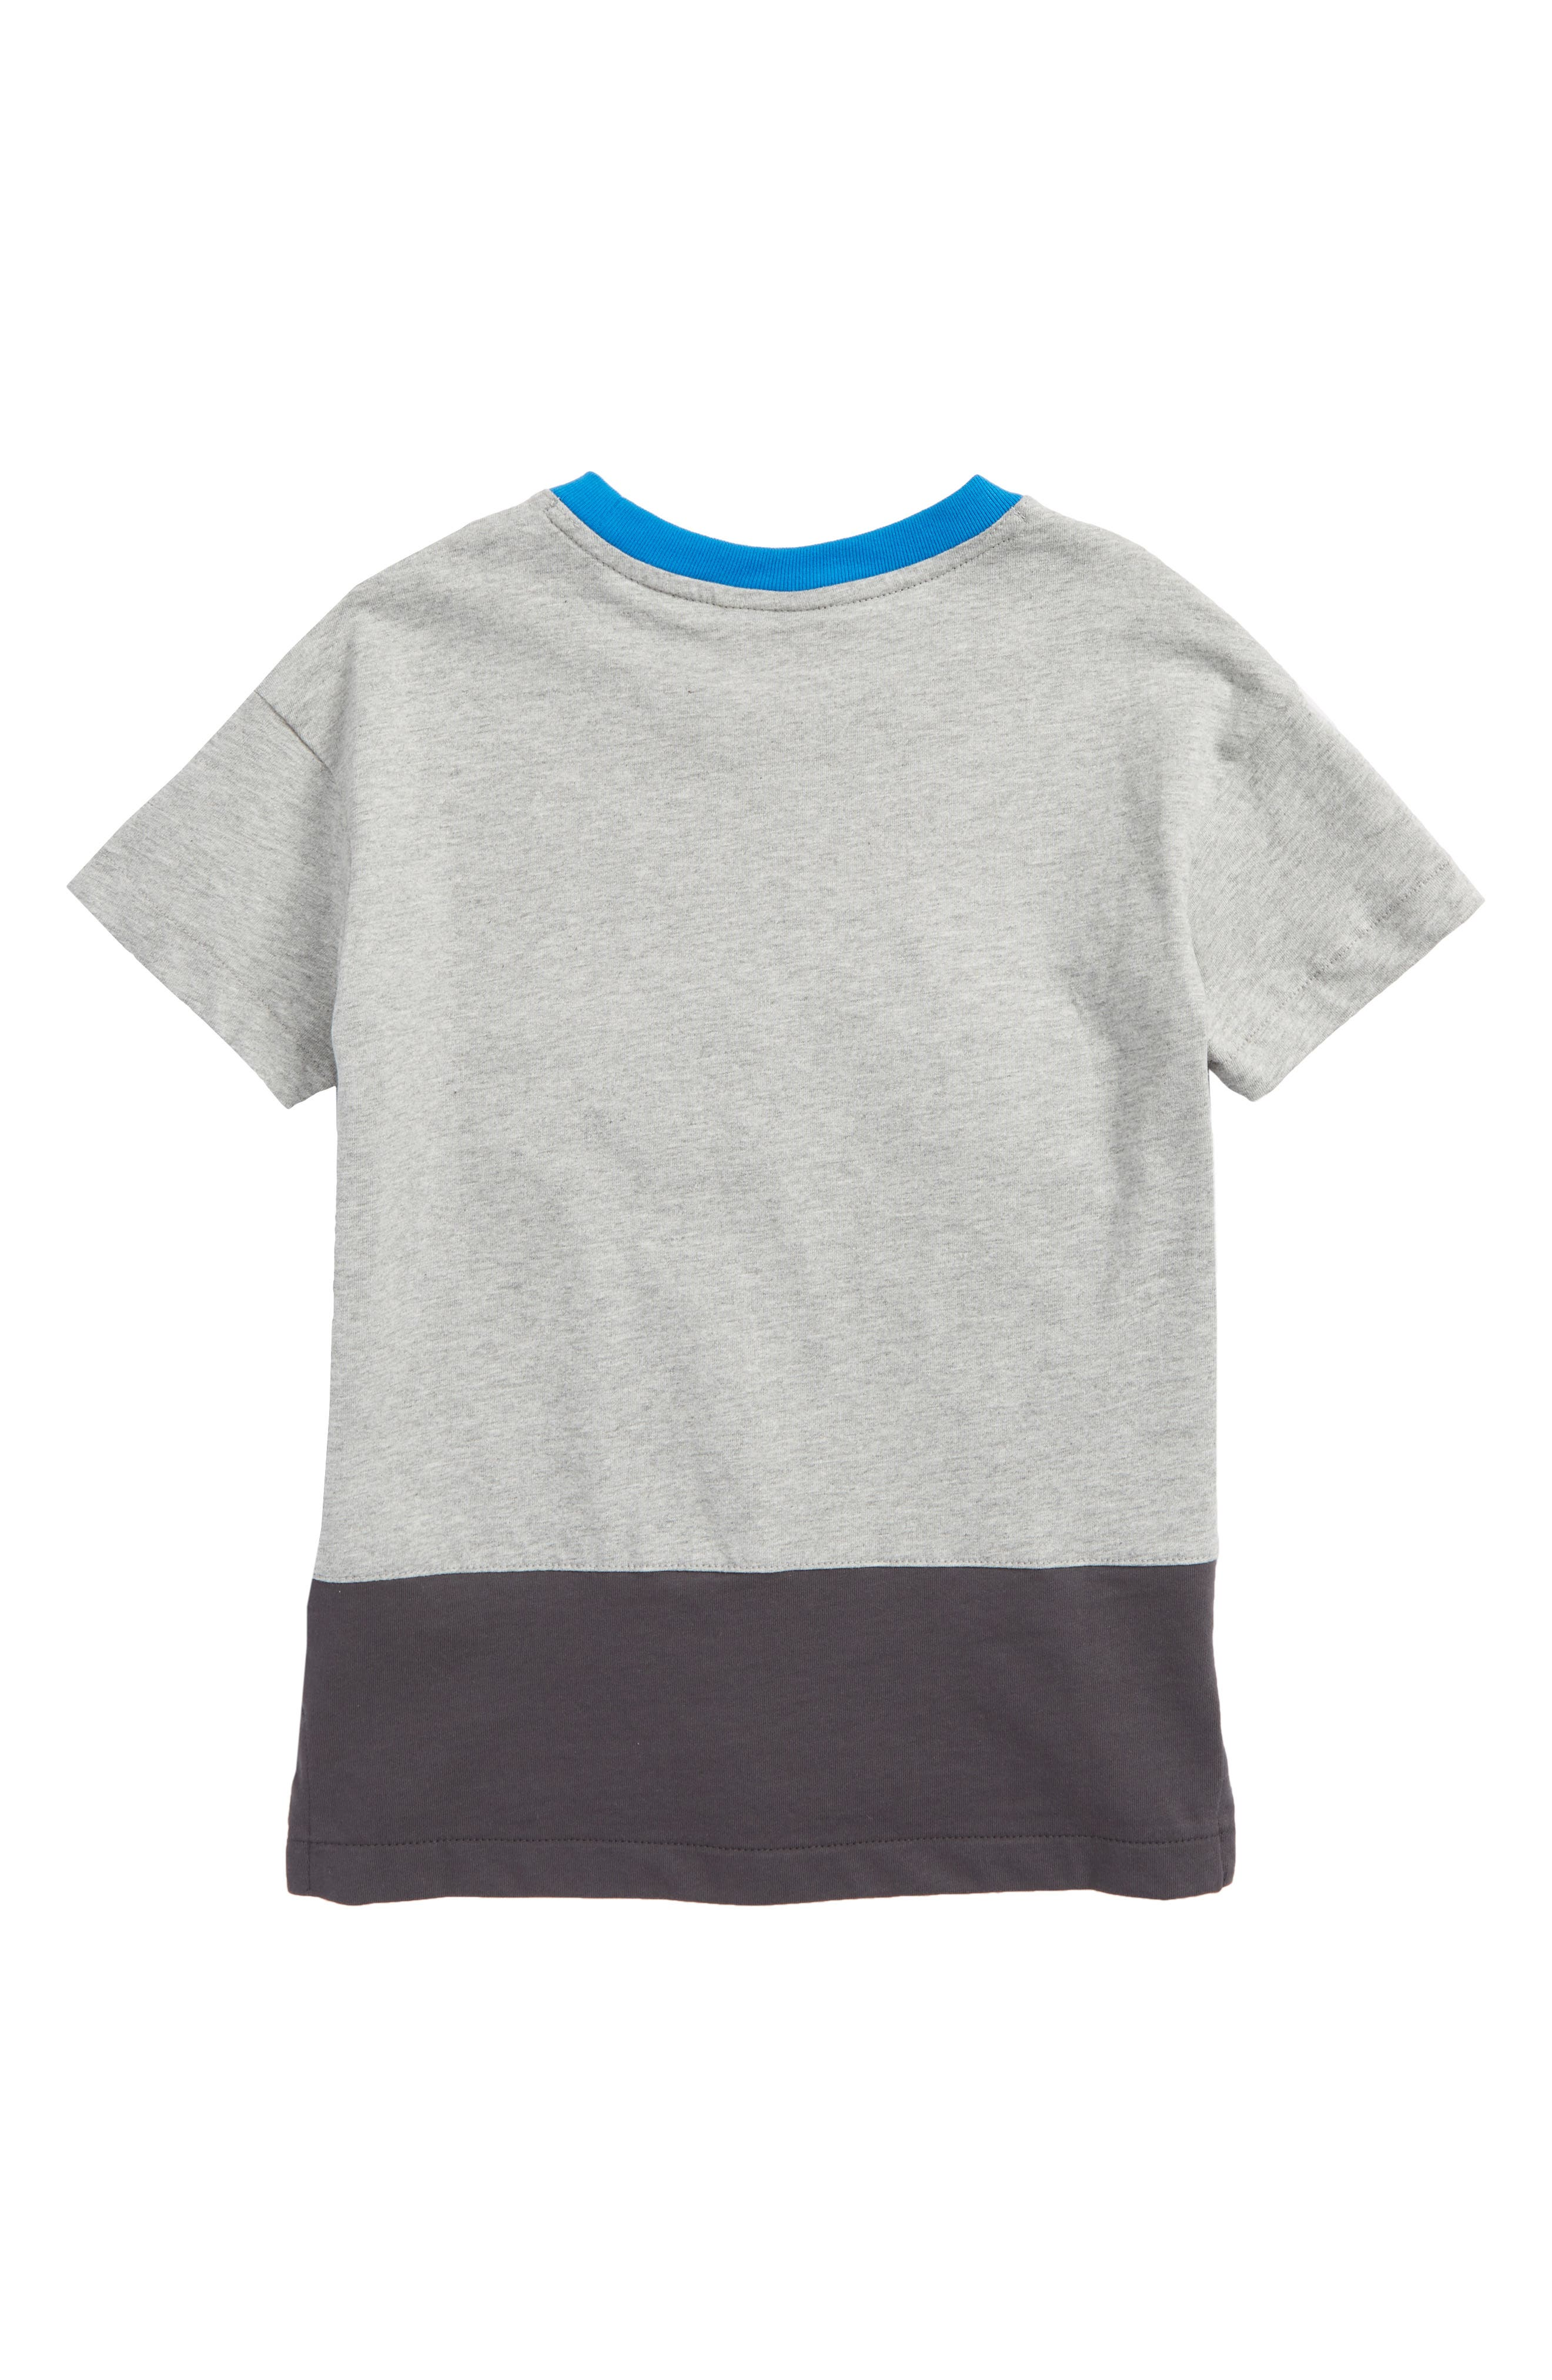 Air Shirt,                             Alternate thumbnail 2, color,                             Dark Grey Heather/ Anthracite